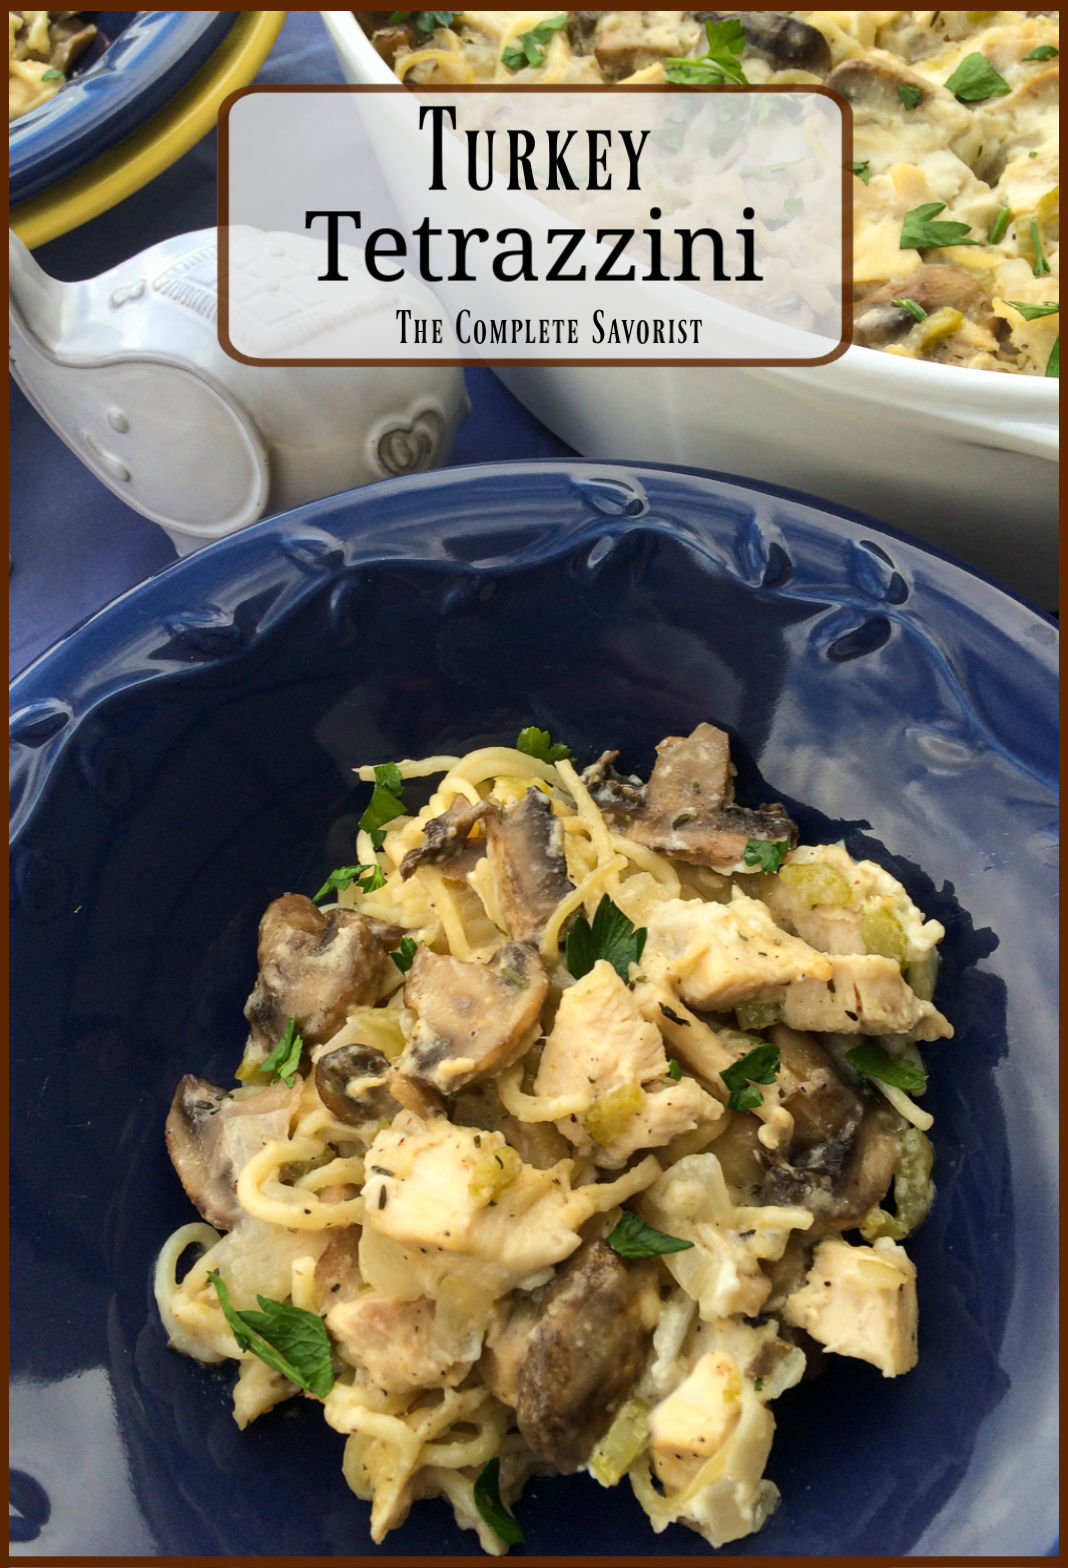 A serving of tetrazzini with mushrooms, turkey, garnished with fresh parsley in a blue bowl with the casserole in the background.